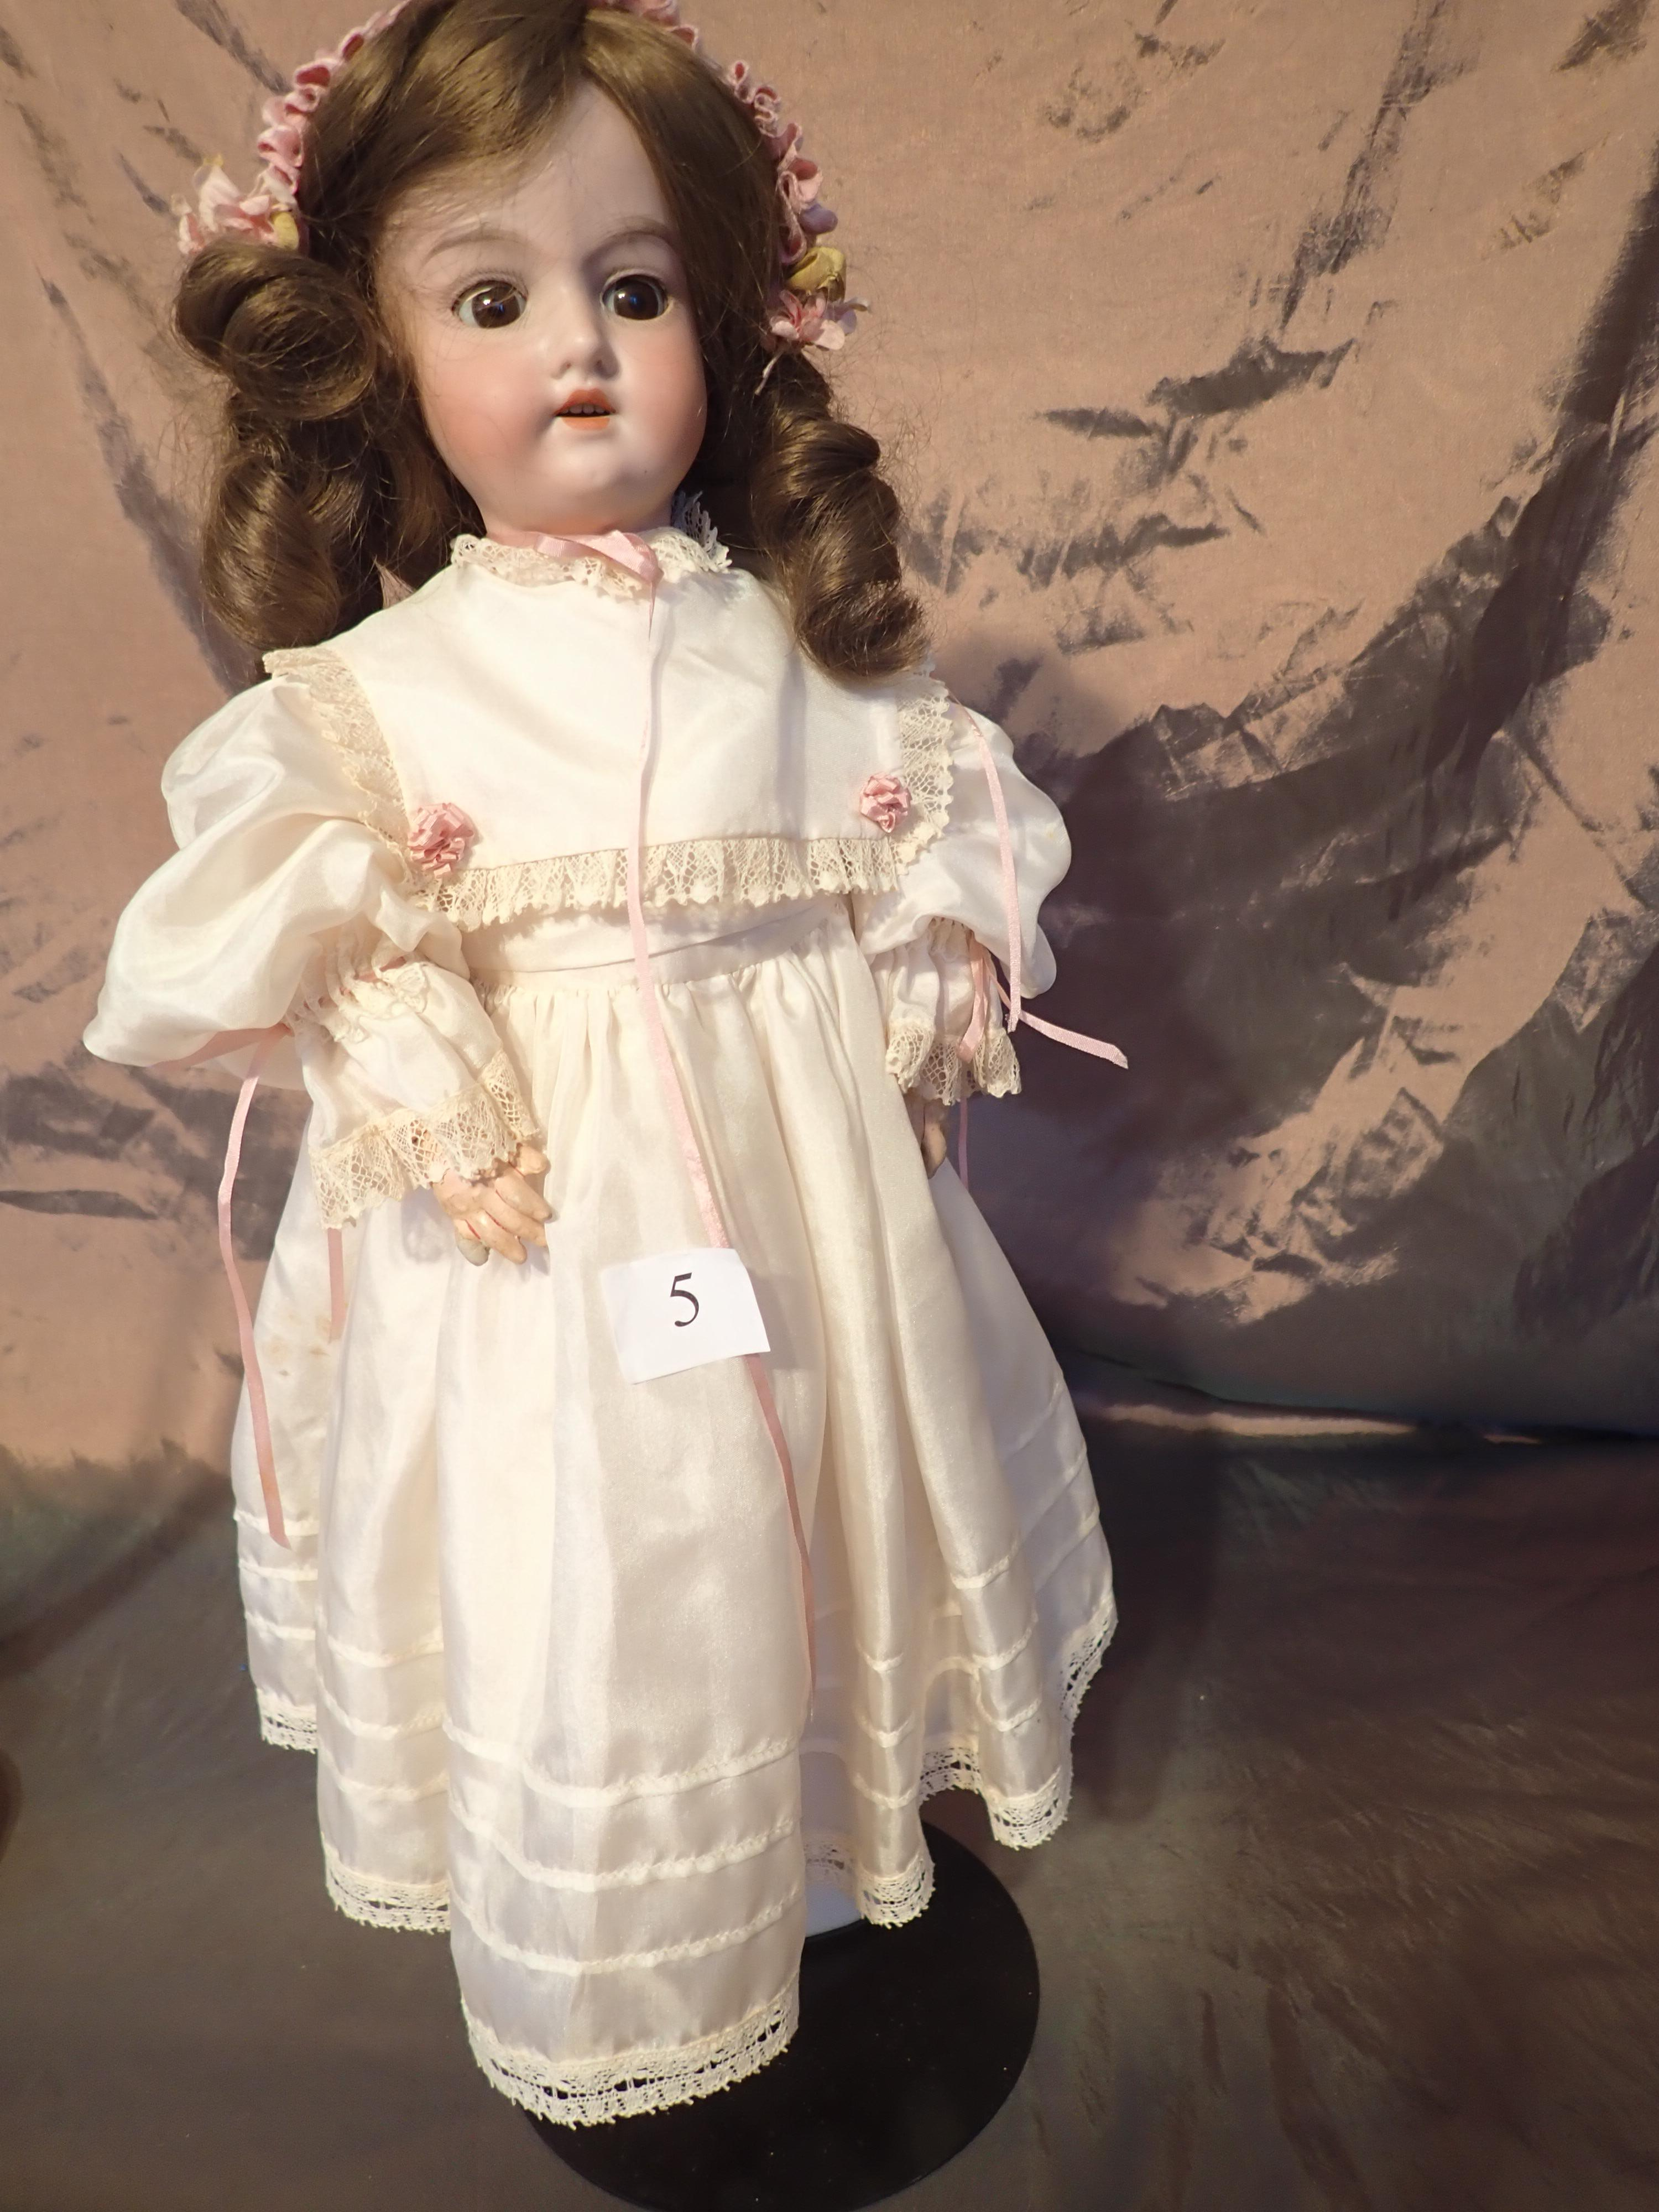 """20"""" GERMANY PORCELAIN HEADED DOLL MARKED 390 A2M - NICELY DRESSED WITH A NICE LINEN DRESS AND PANTALOONS, SHOES, & SOCKS & HEAD RIBBON - IN GOOD ORIGINAL CONDITION - ONE FINGER AND KNEE JOINT REPAIRED NOT PAINTED."""